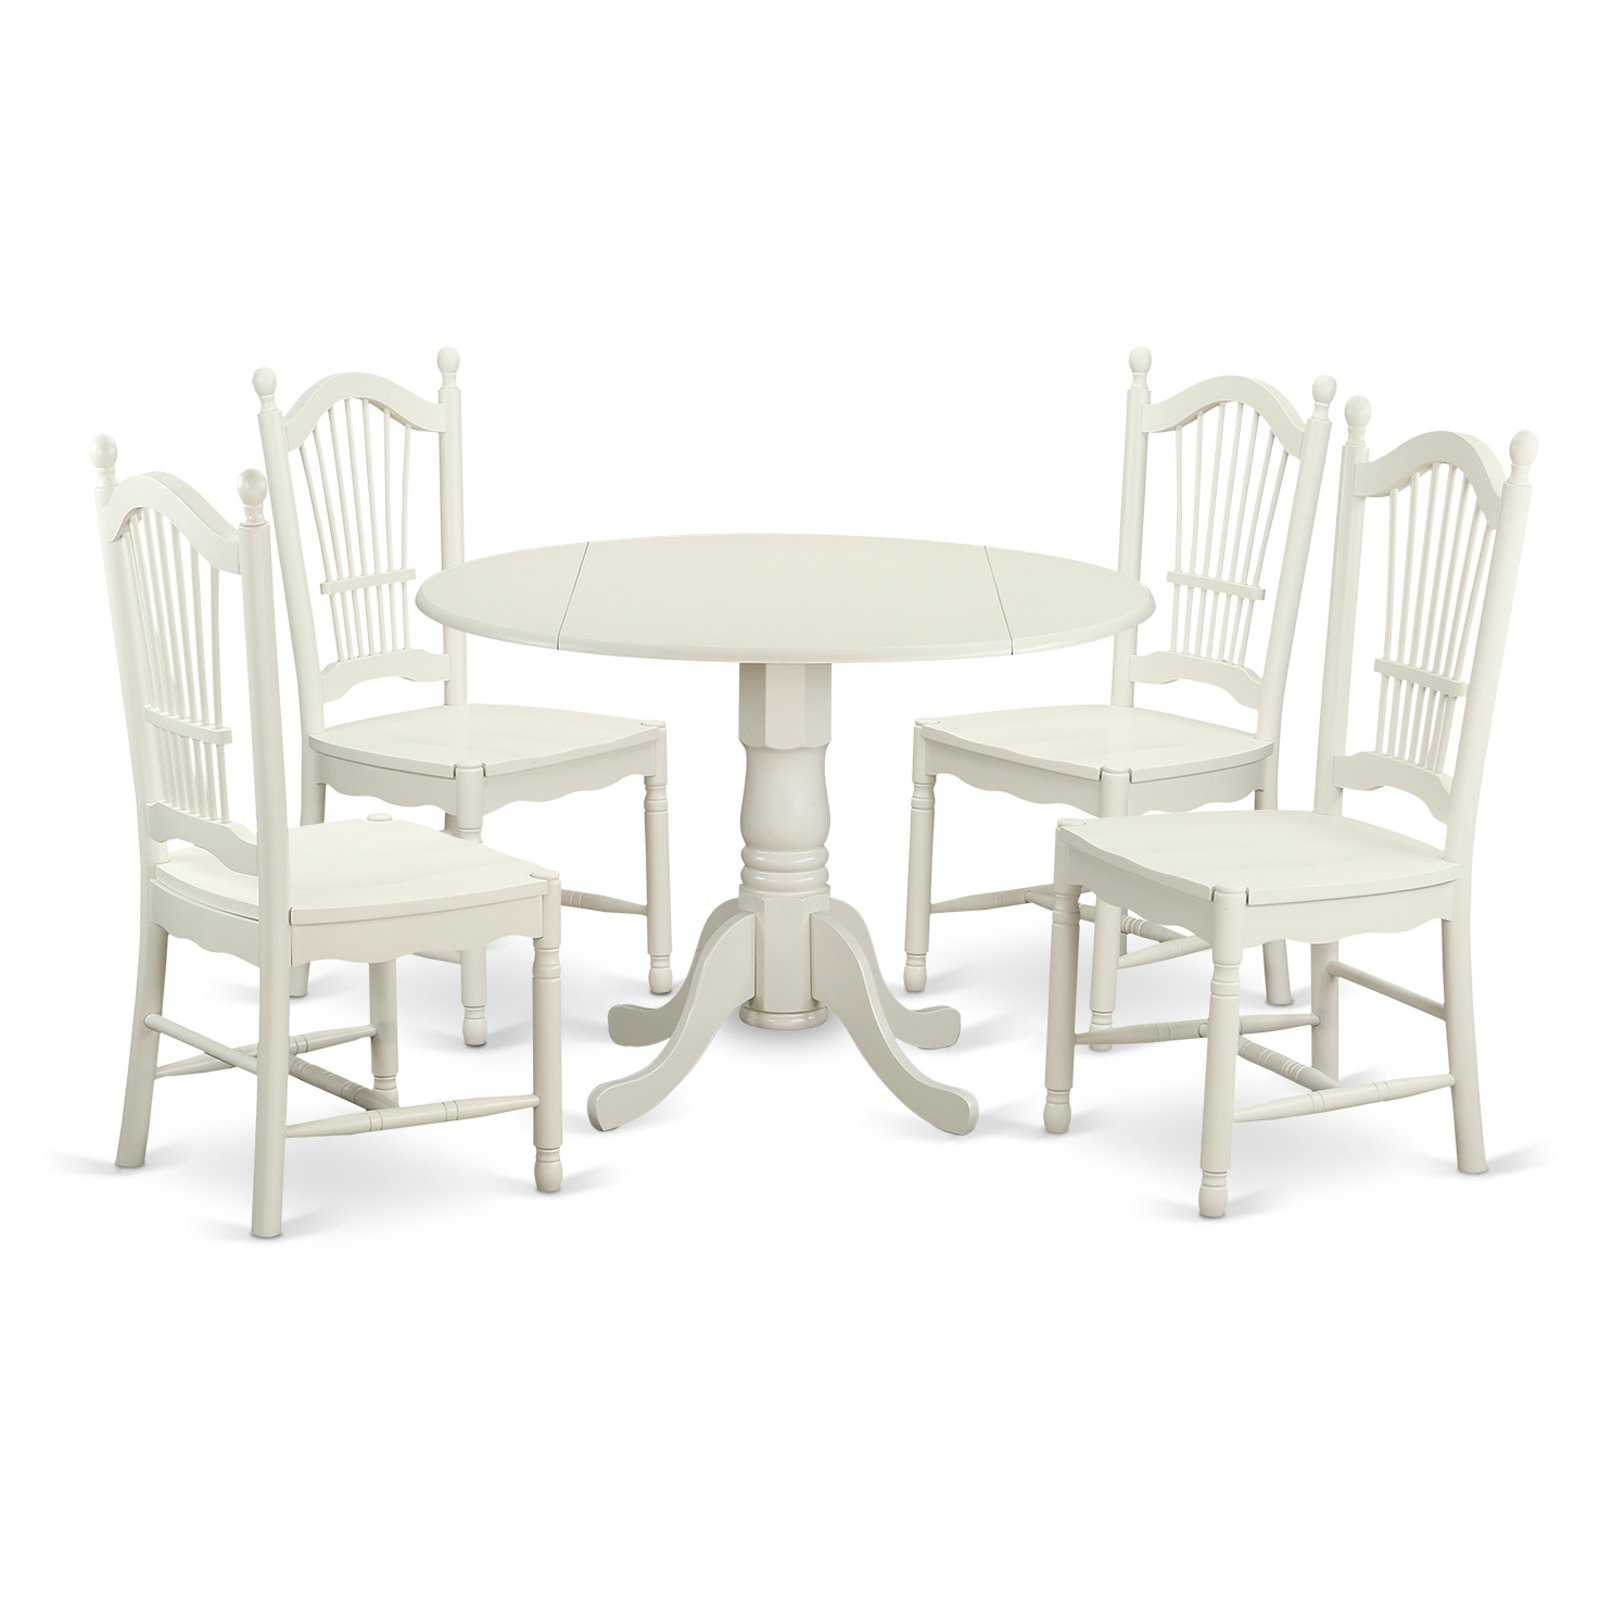 East West Furniture Dublin 5 Piece Drop Leaf Dining Table Set with Dover Wooden Seat Chairs